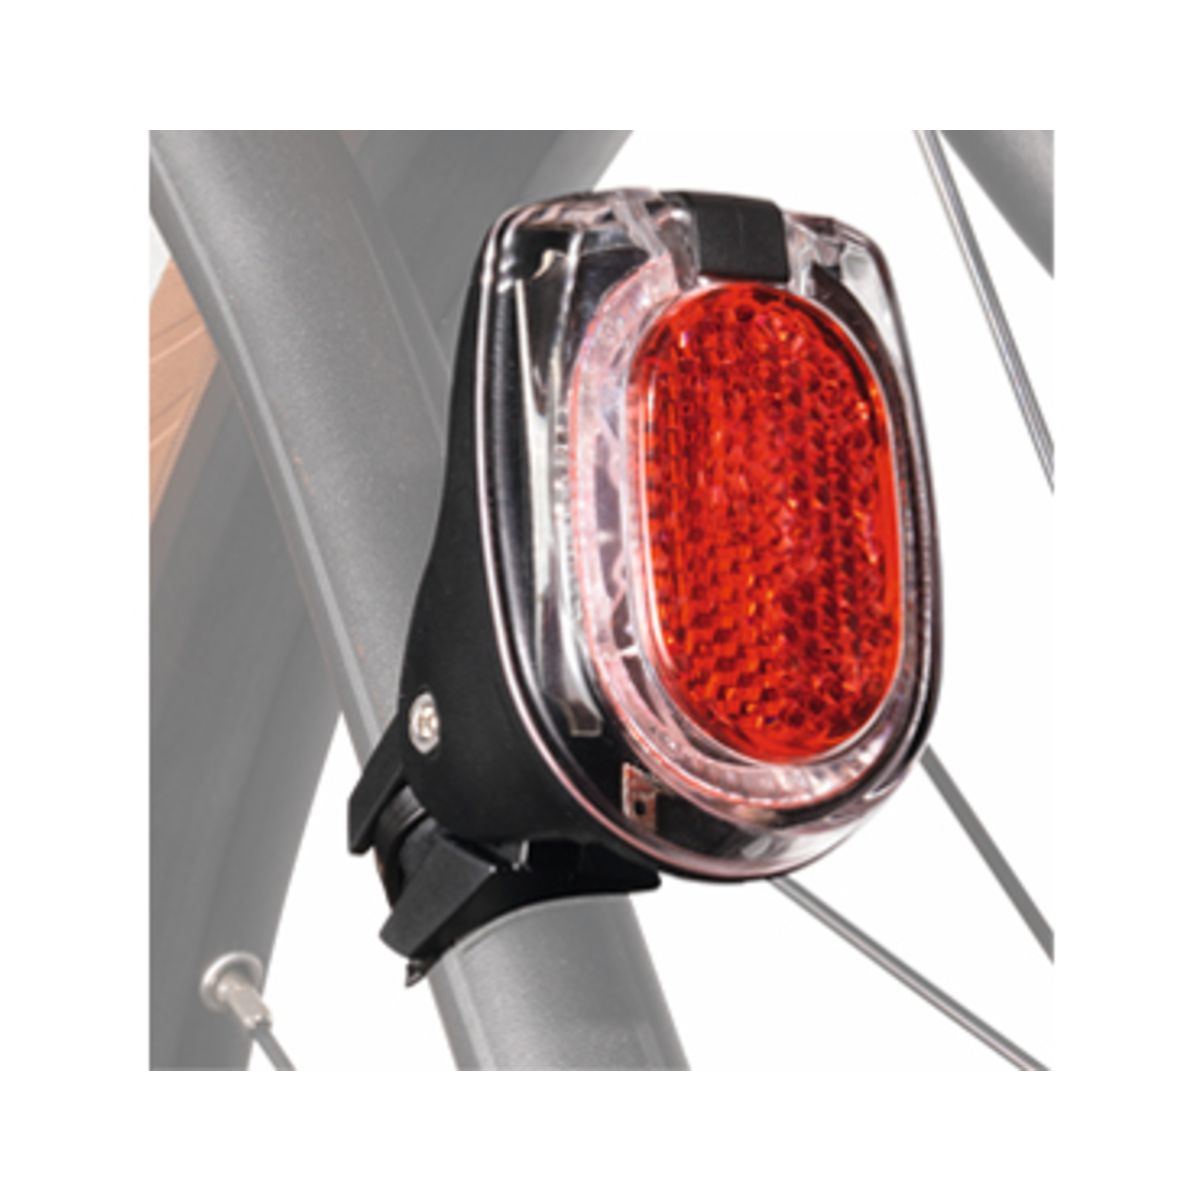 Secula plus tail light for mounting on seat stays or seat posts